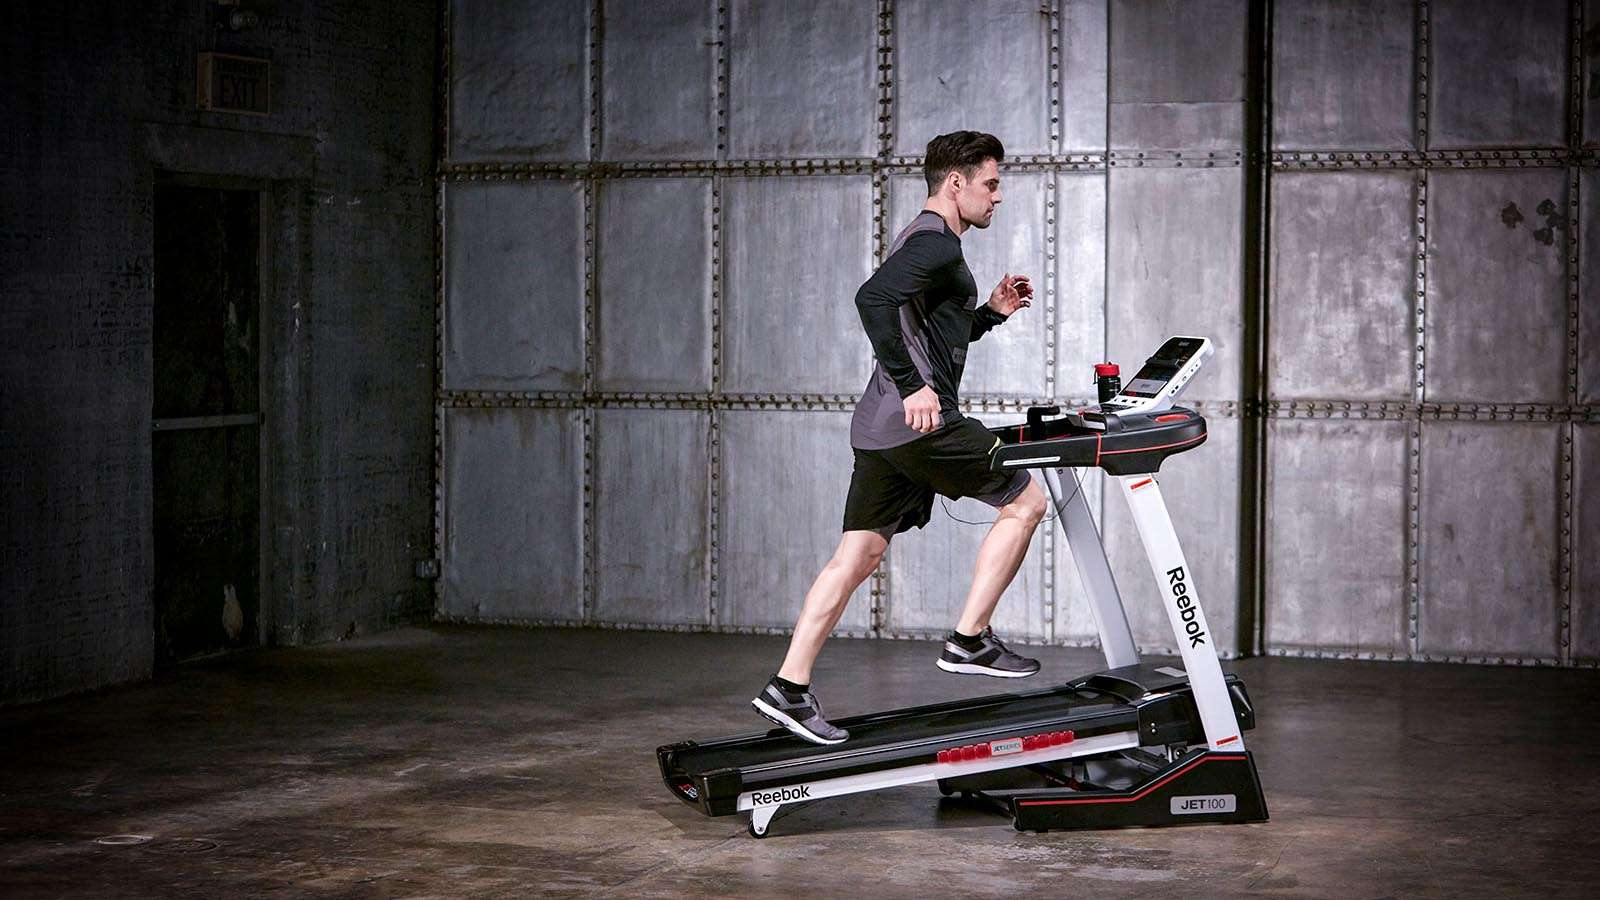 Reebok Jet 100 Treadmill review main